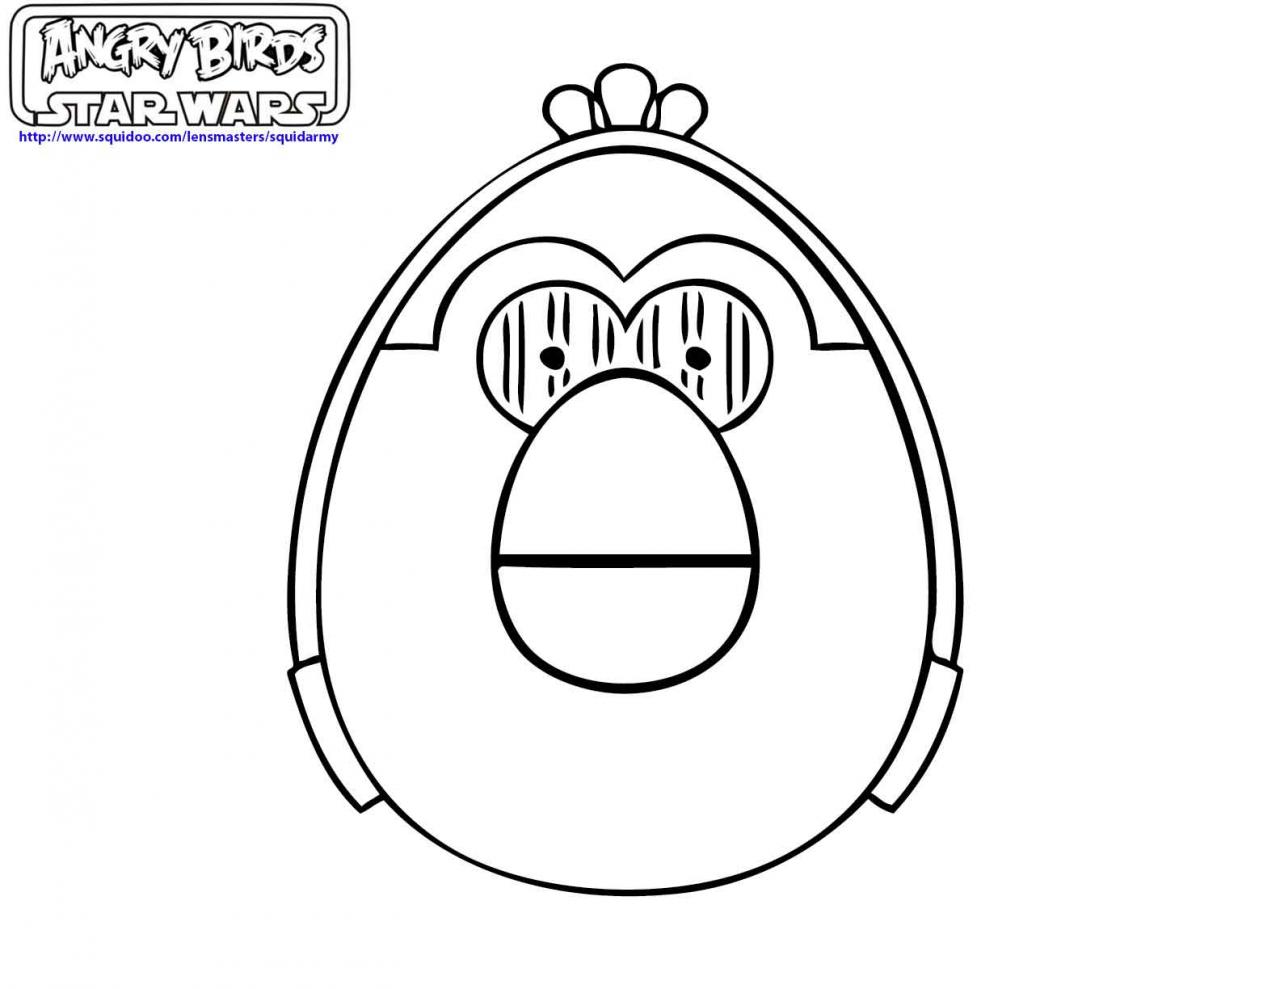 1280x989 Angry Birds Star Wars Coloring Pages Coloring Page For Kids Kids